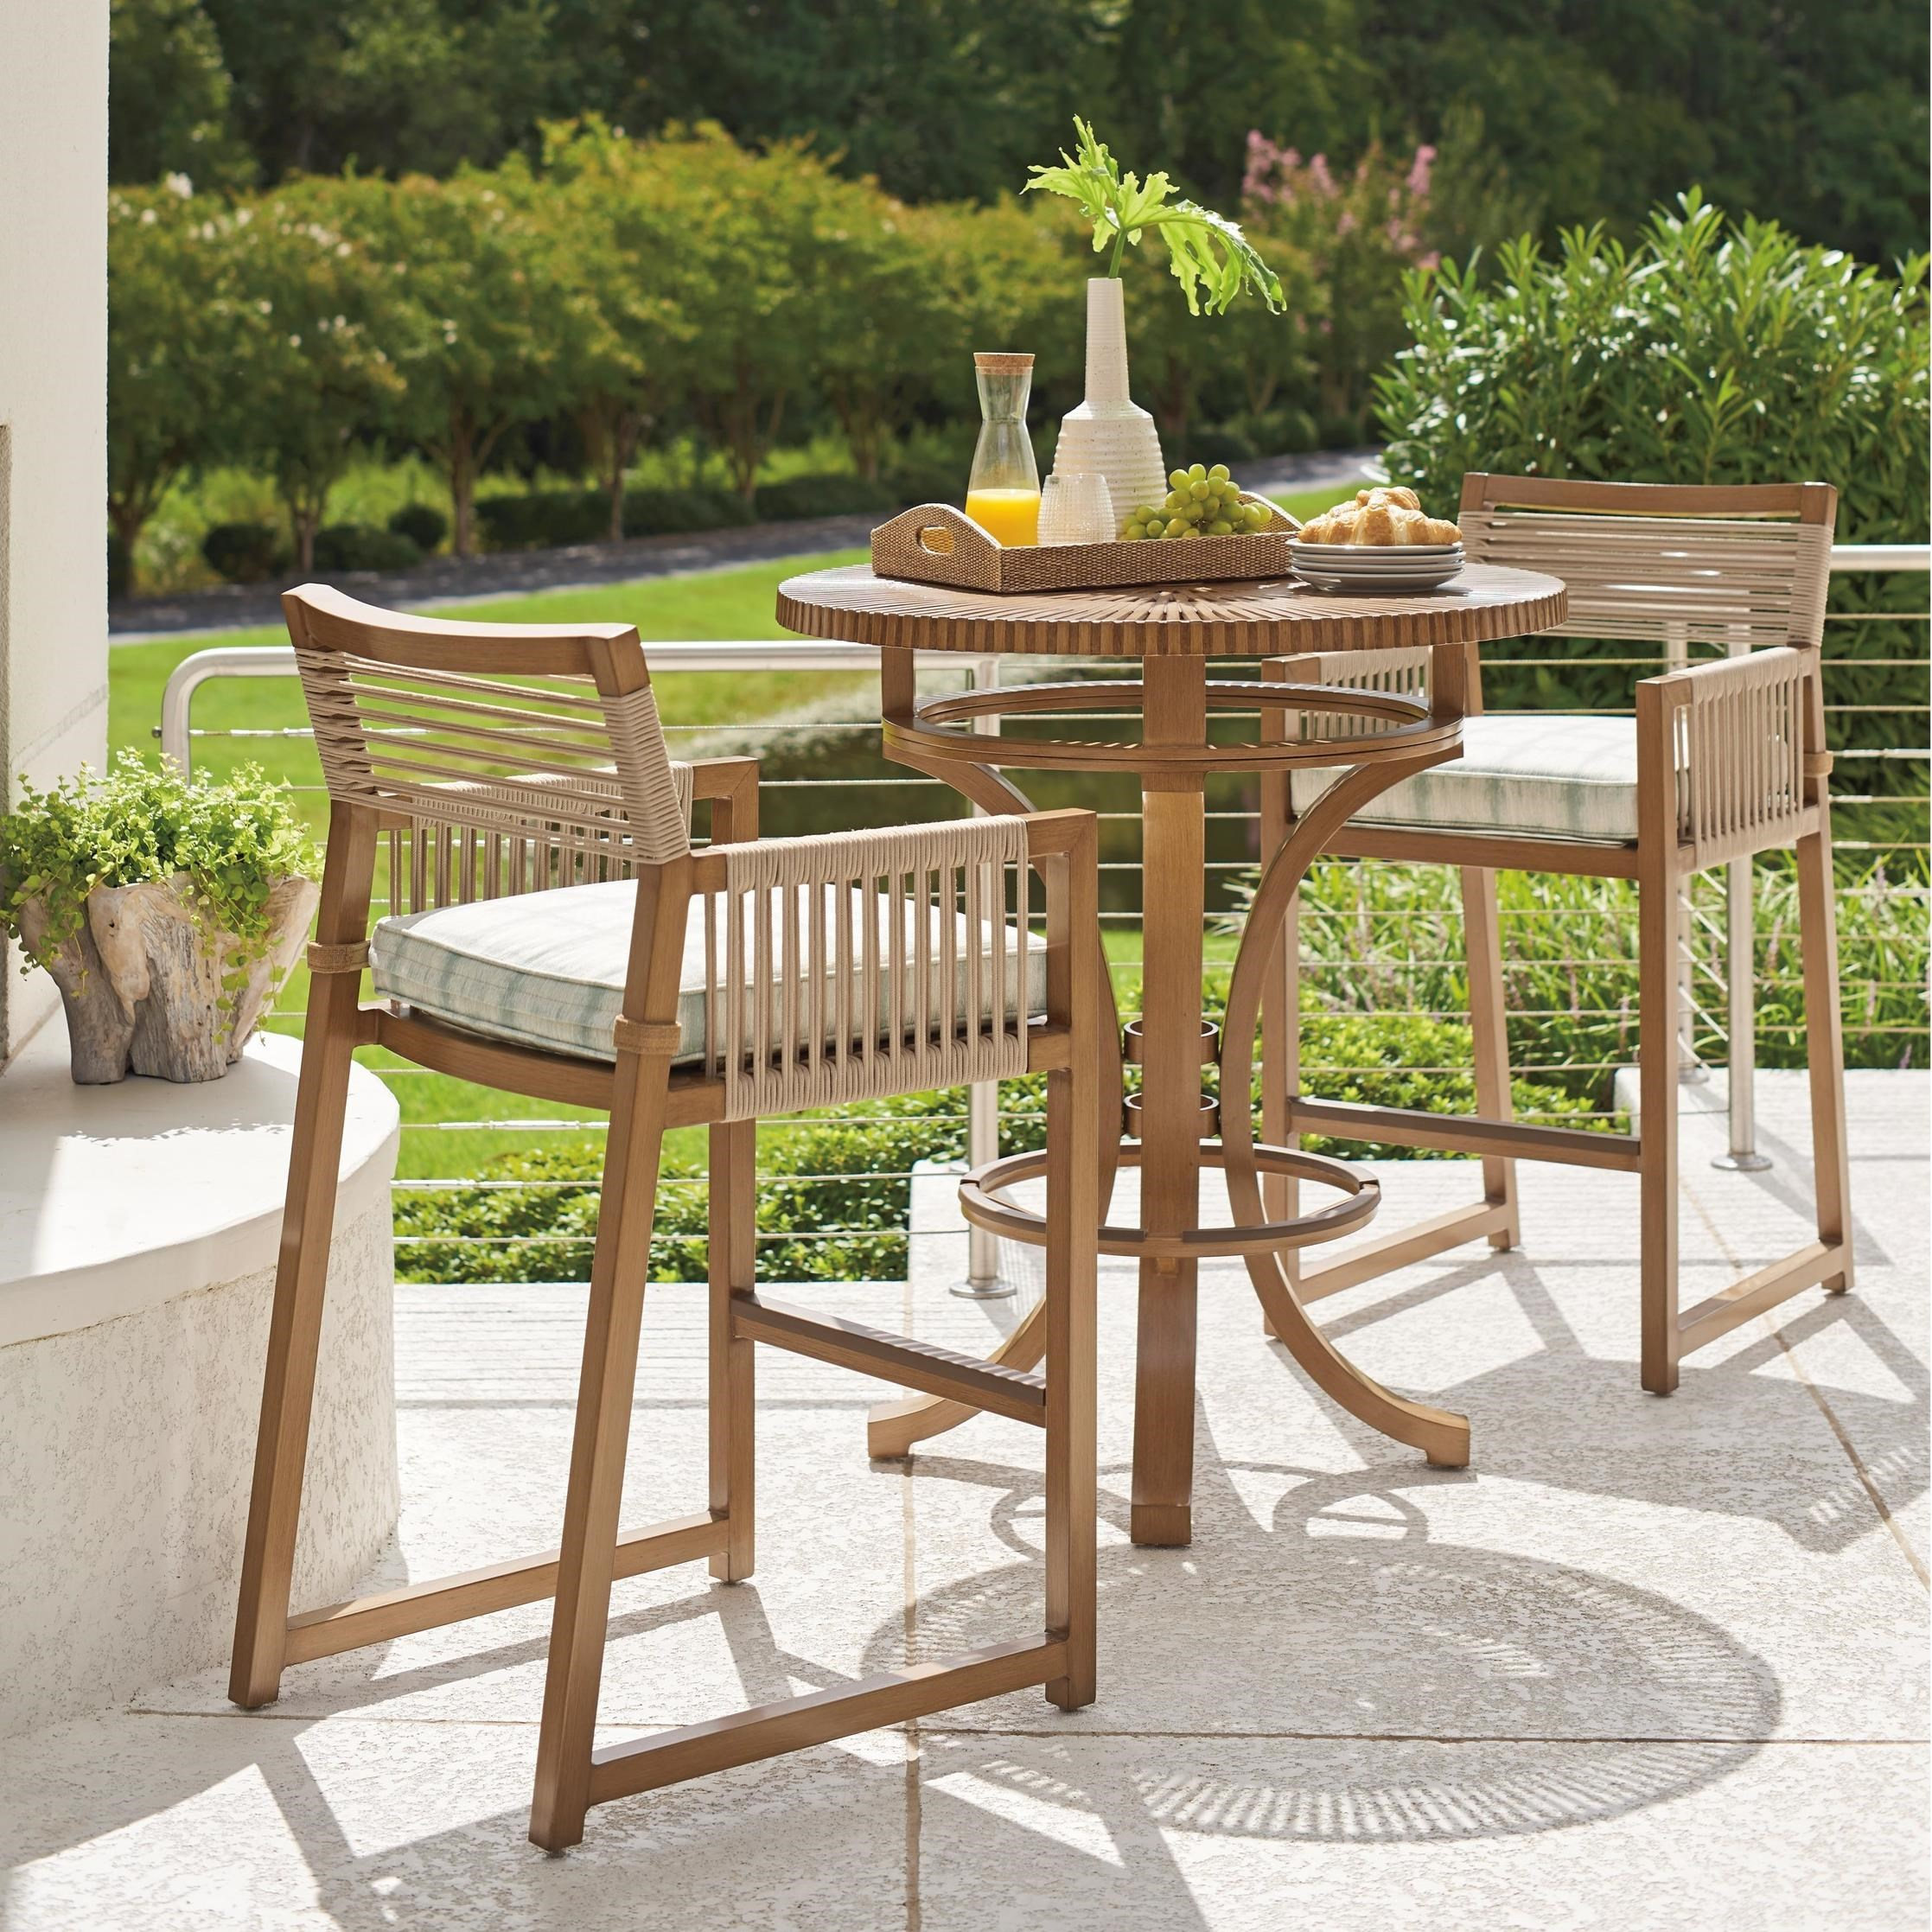 St Tropez 3-Piece Outdoor Bistro Set w/ Bar Stools by Tommy Bahama Outdoor Living at Baer's Furniture